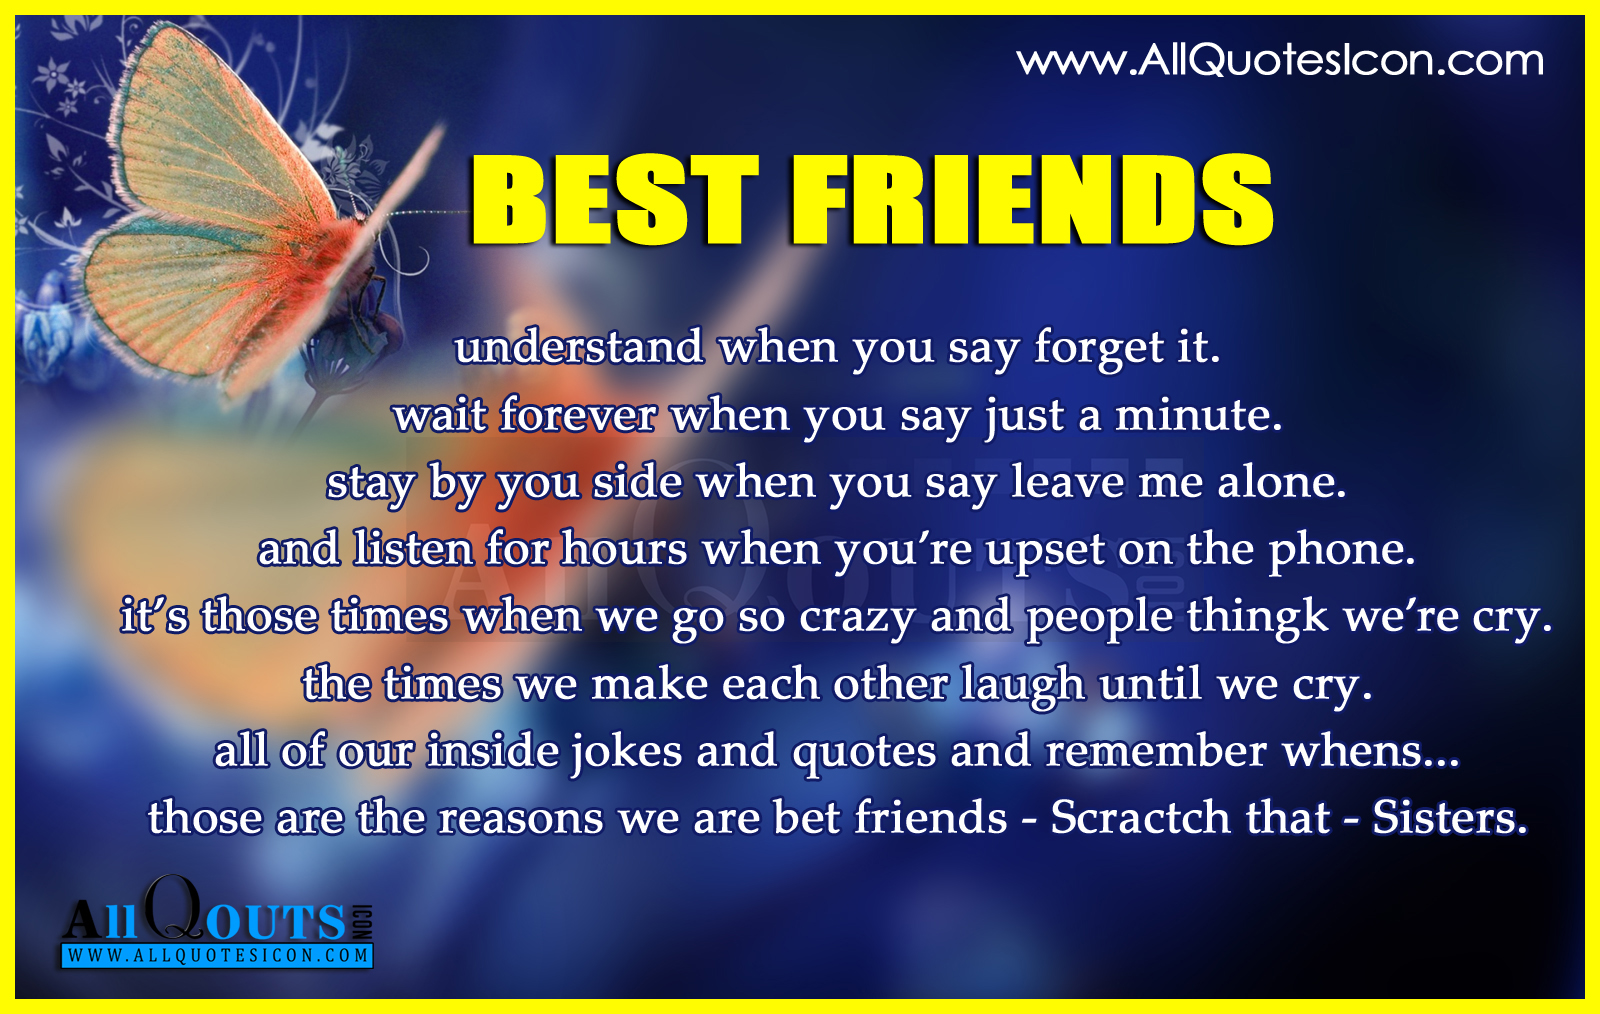 English Quotes About Friendship Best Friendship Quotes And Feelings In English Lie Inspiration